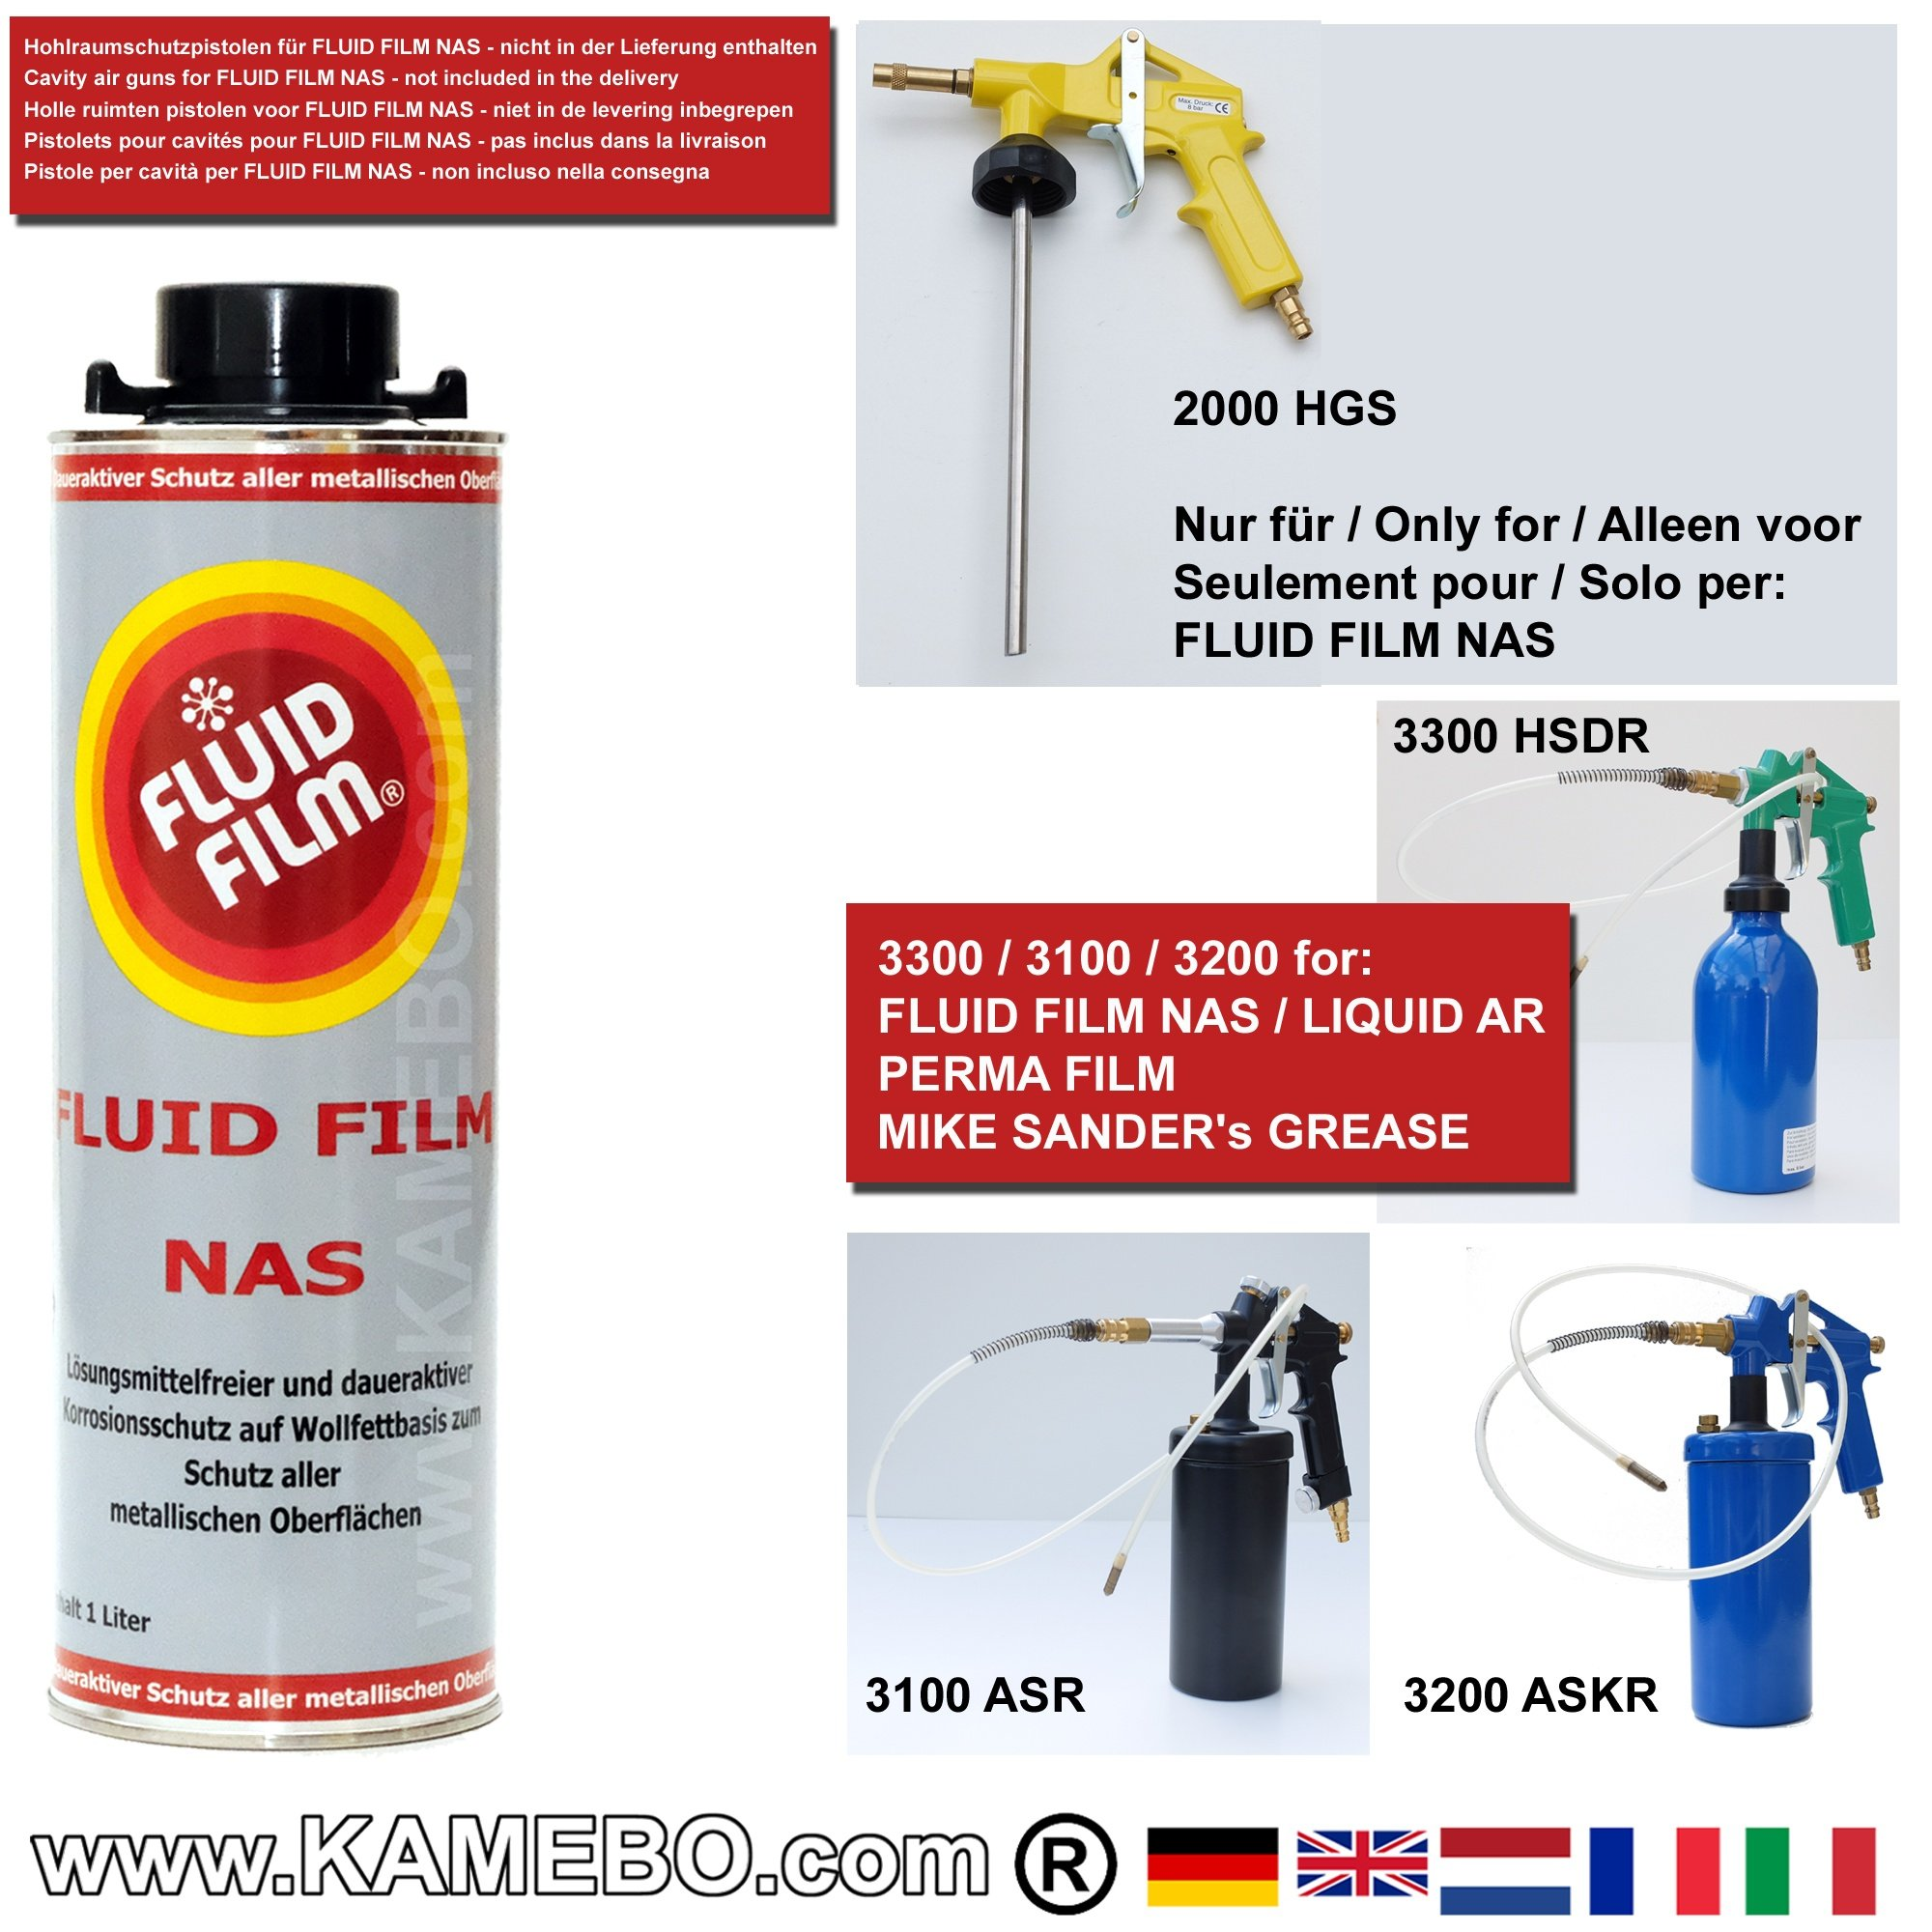 fluid film nas cavity protection anti rust oil 1 litre. Black Bedroom Furniture Sets. Home Design Ideas